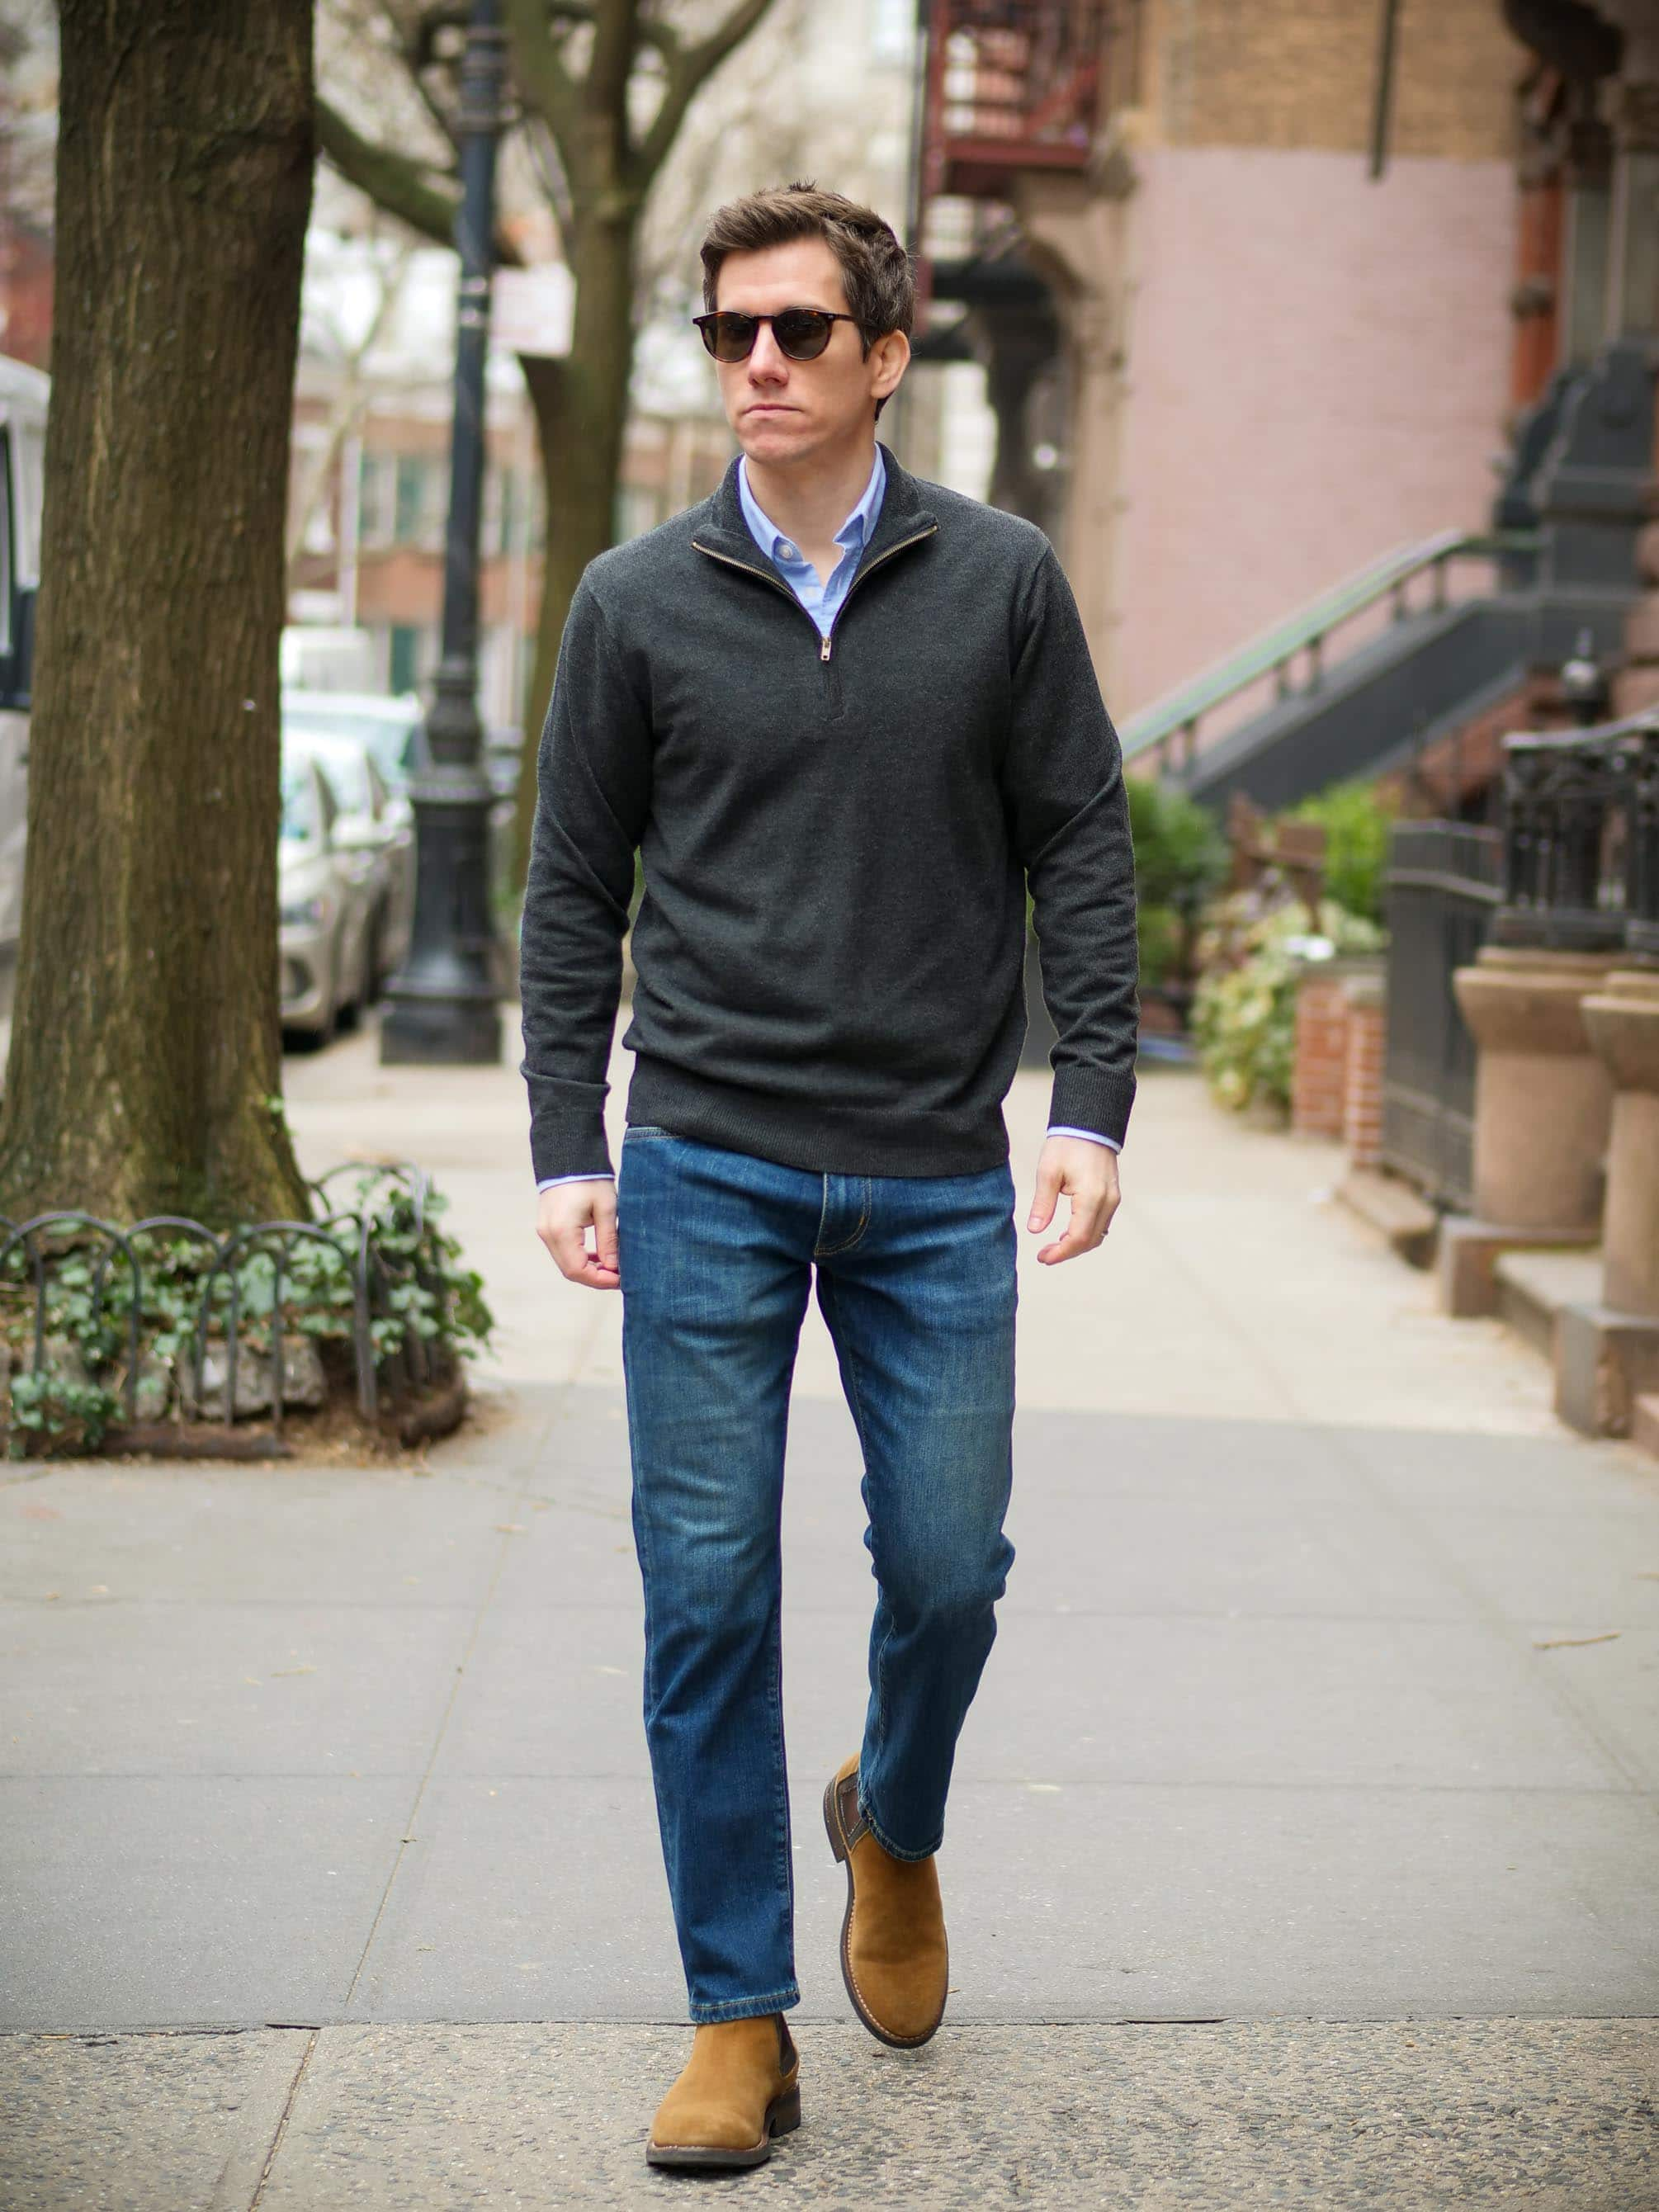 A casual date first on men what to wear I Asked